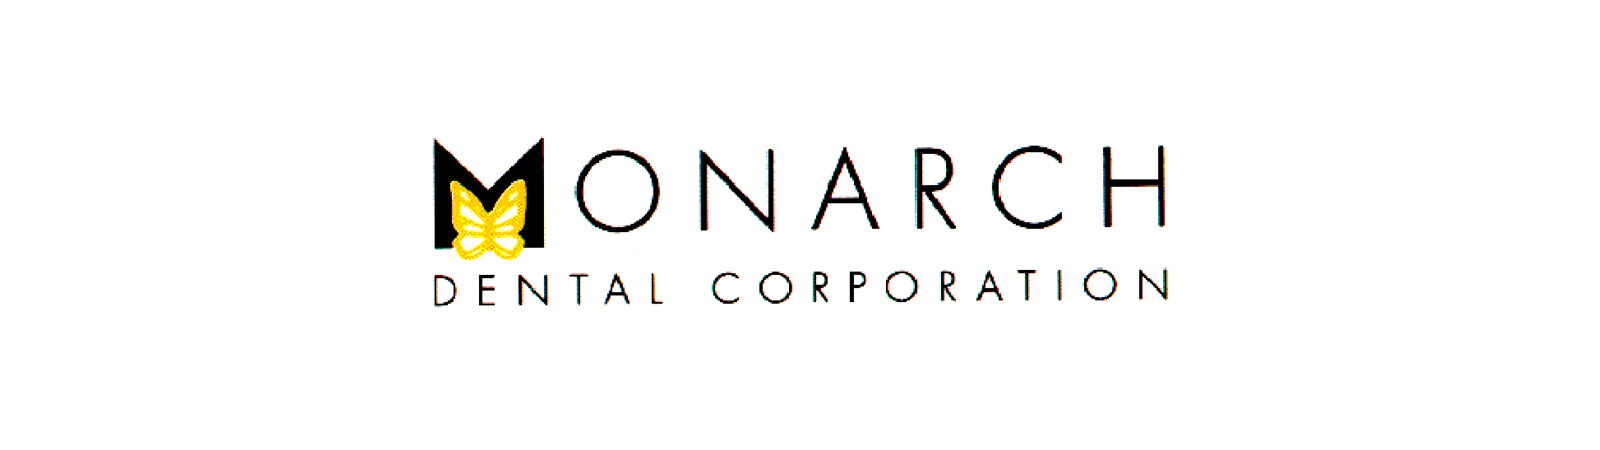 Monarch Dental logo image